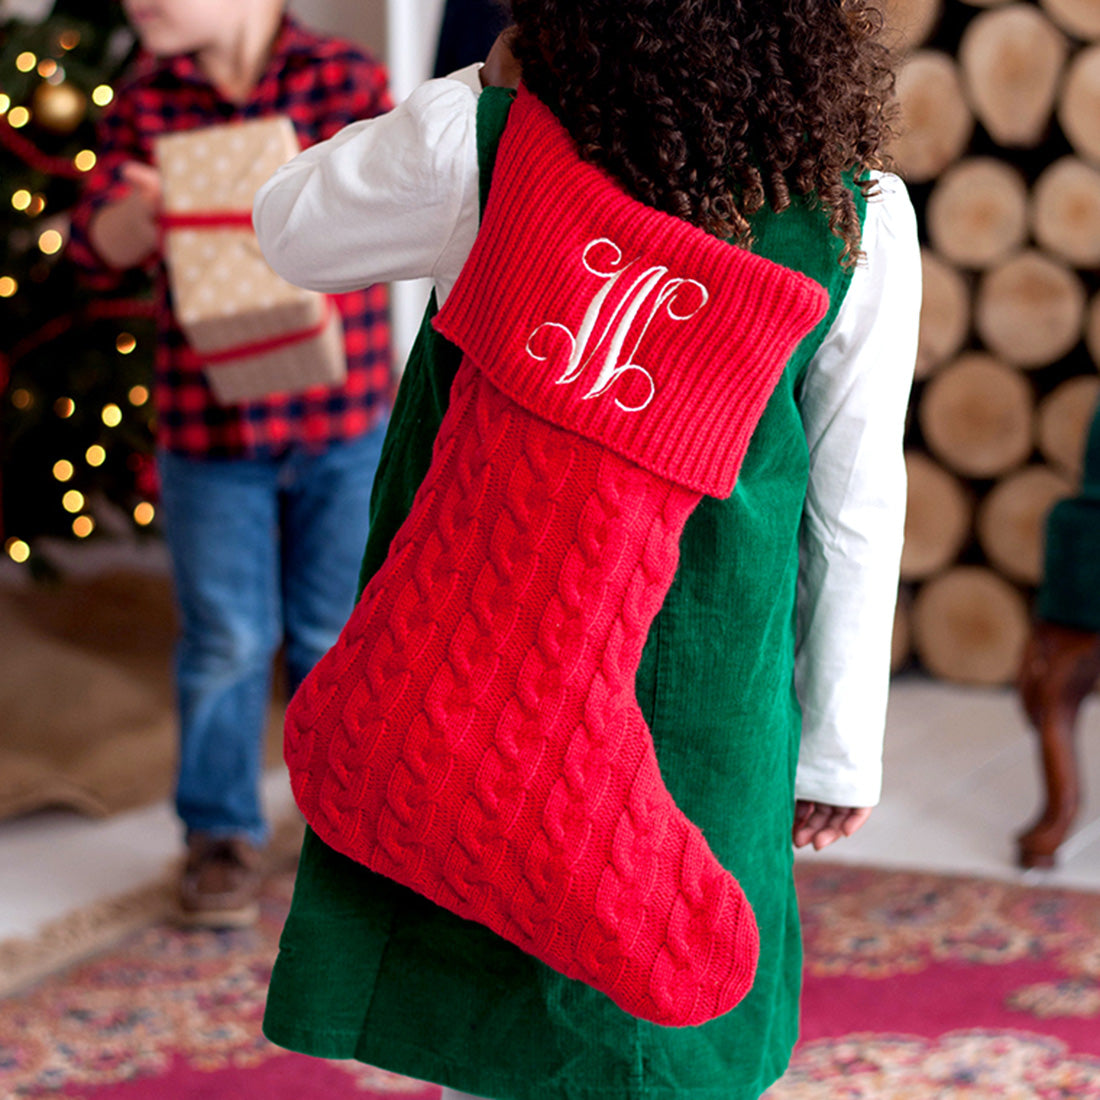 Classic Cable Knit Christmas Stocking in Red - with Monogram,Christmas stocking - Dirt Road Divas Boutique